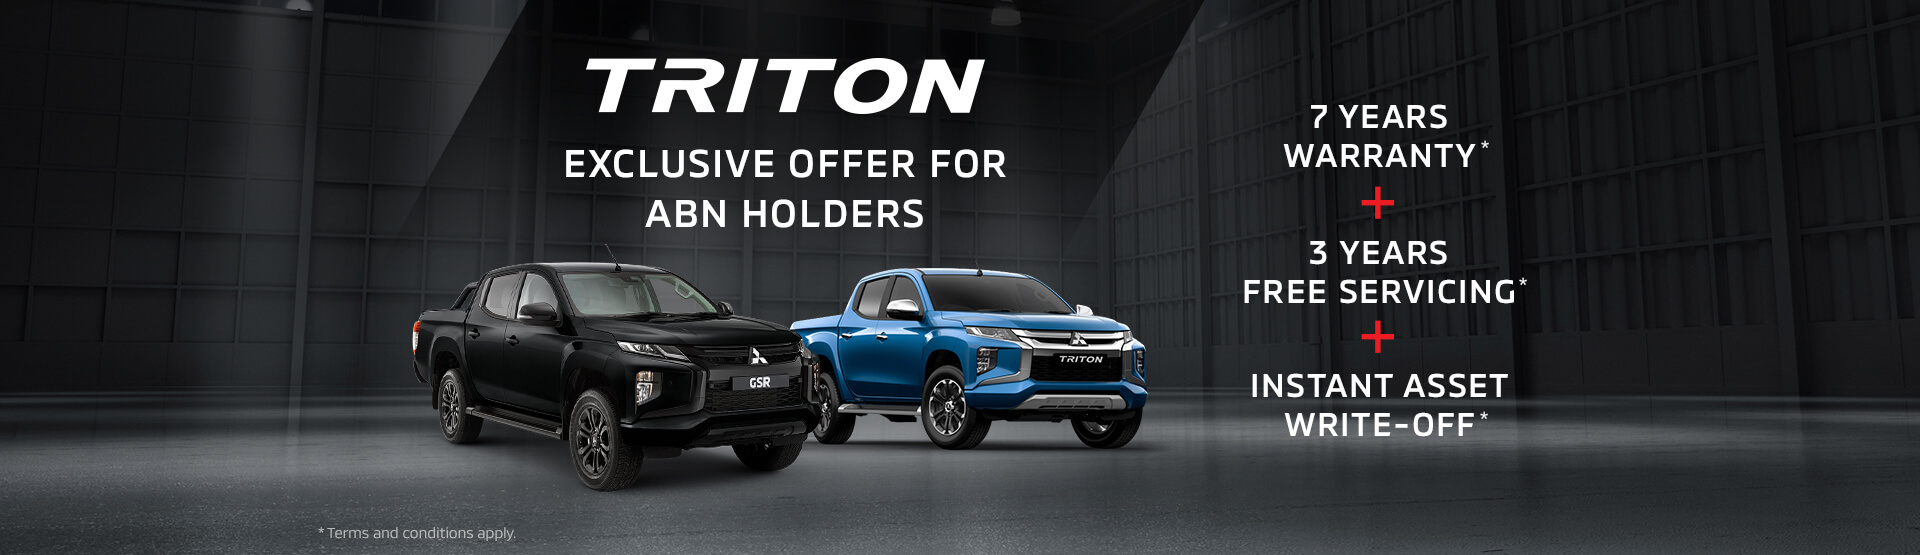 Exclusive offers to ABN Holders across the Mitsubishi Triton range. Book a test drive today.